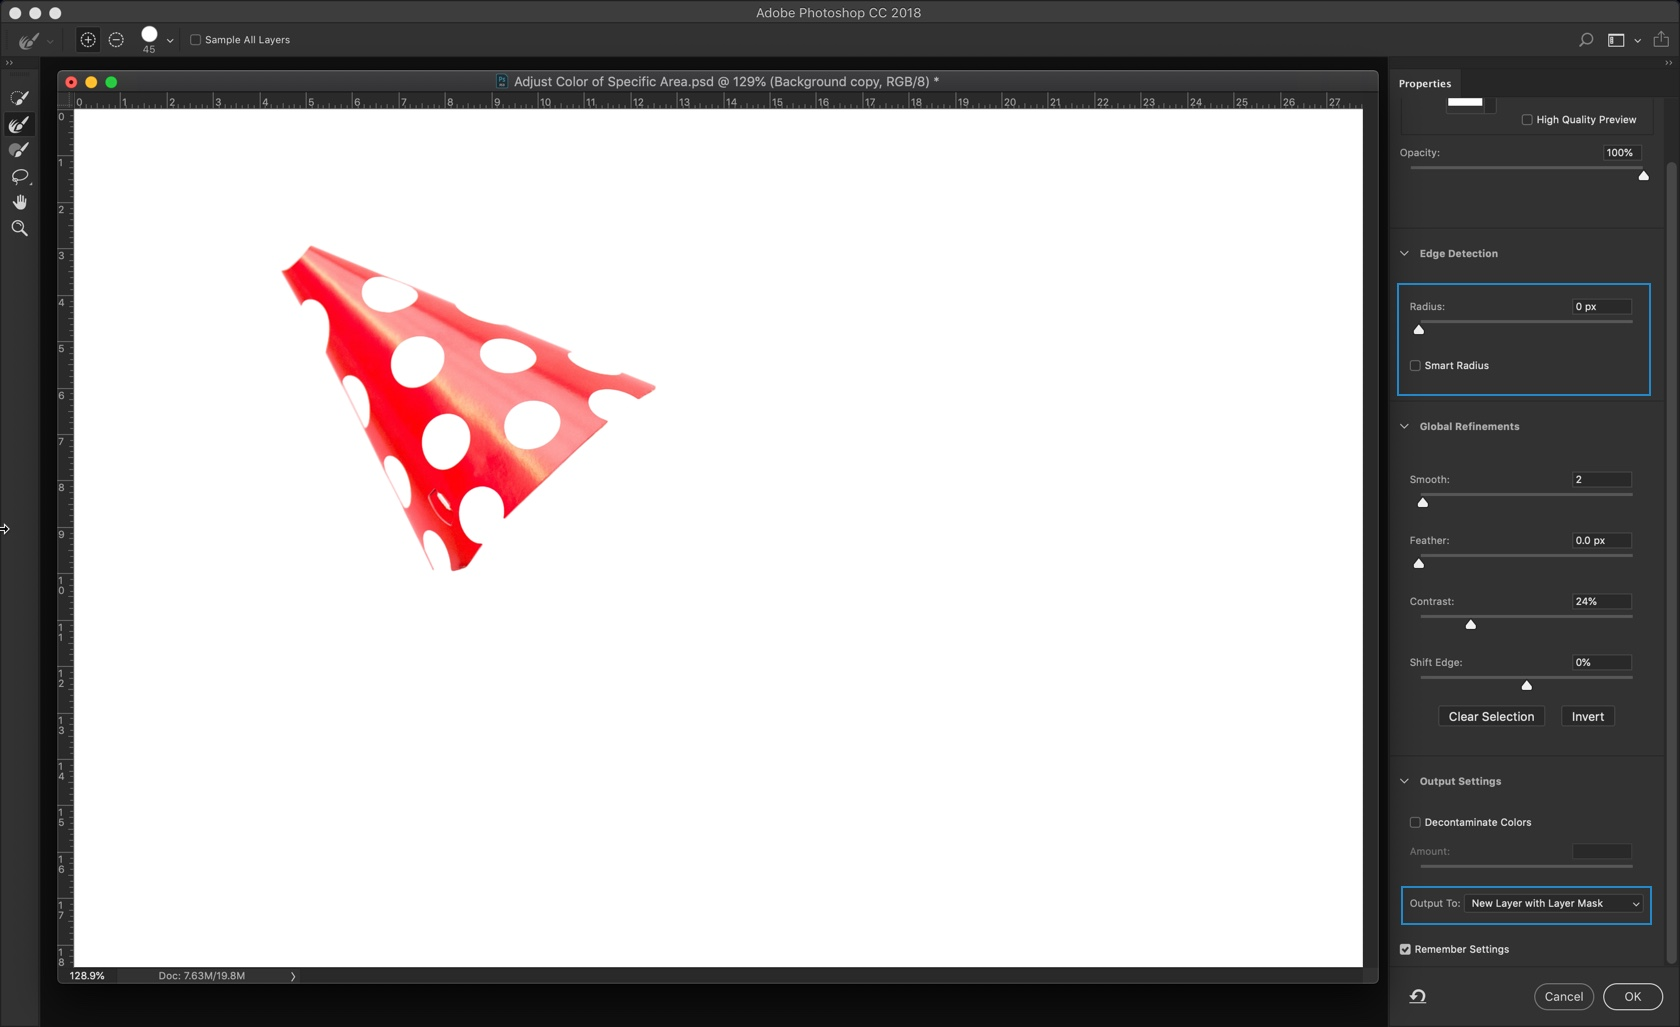 3 - Change the Color of Specific Areas in Photoshop